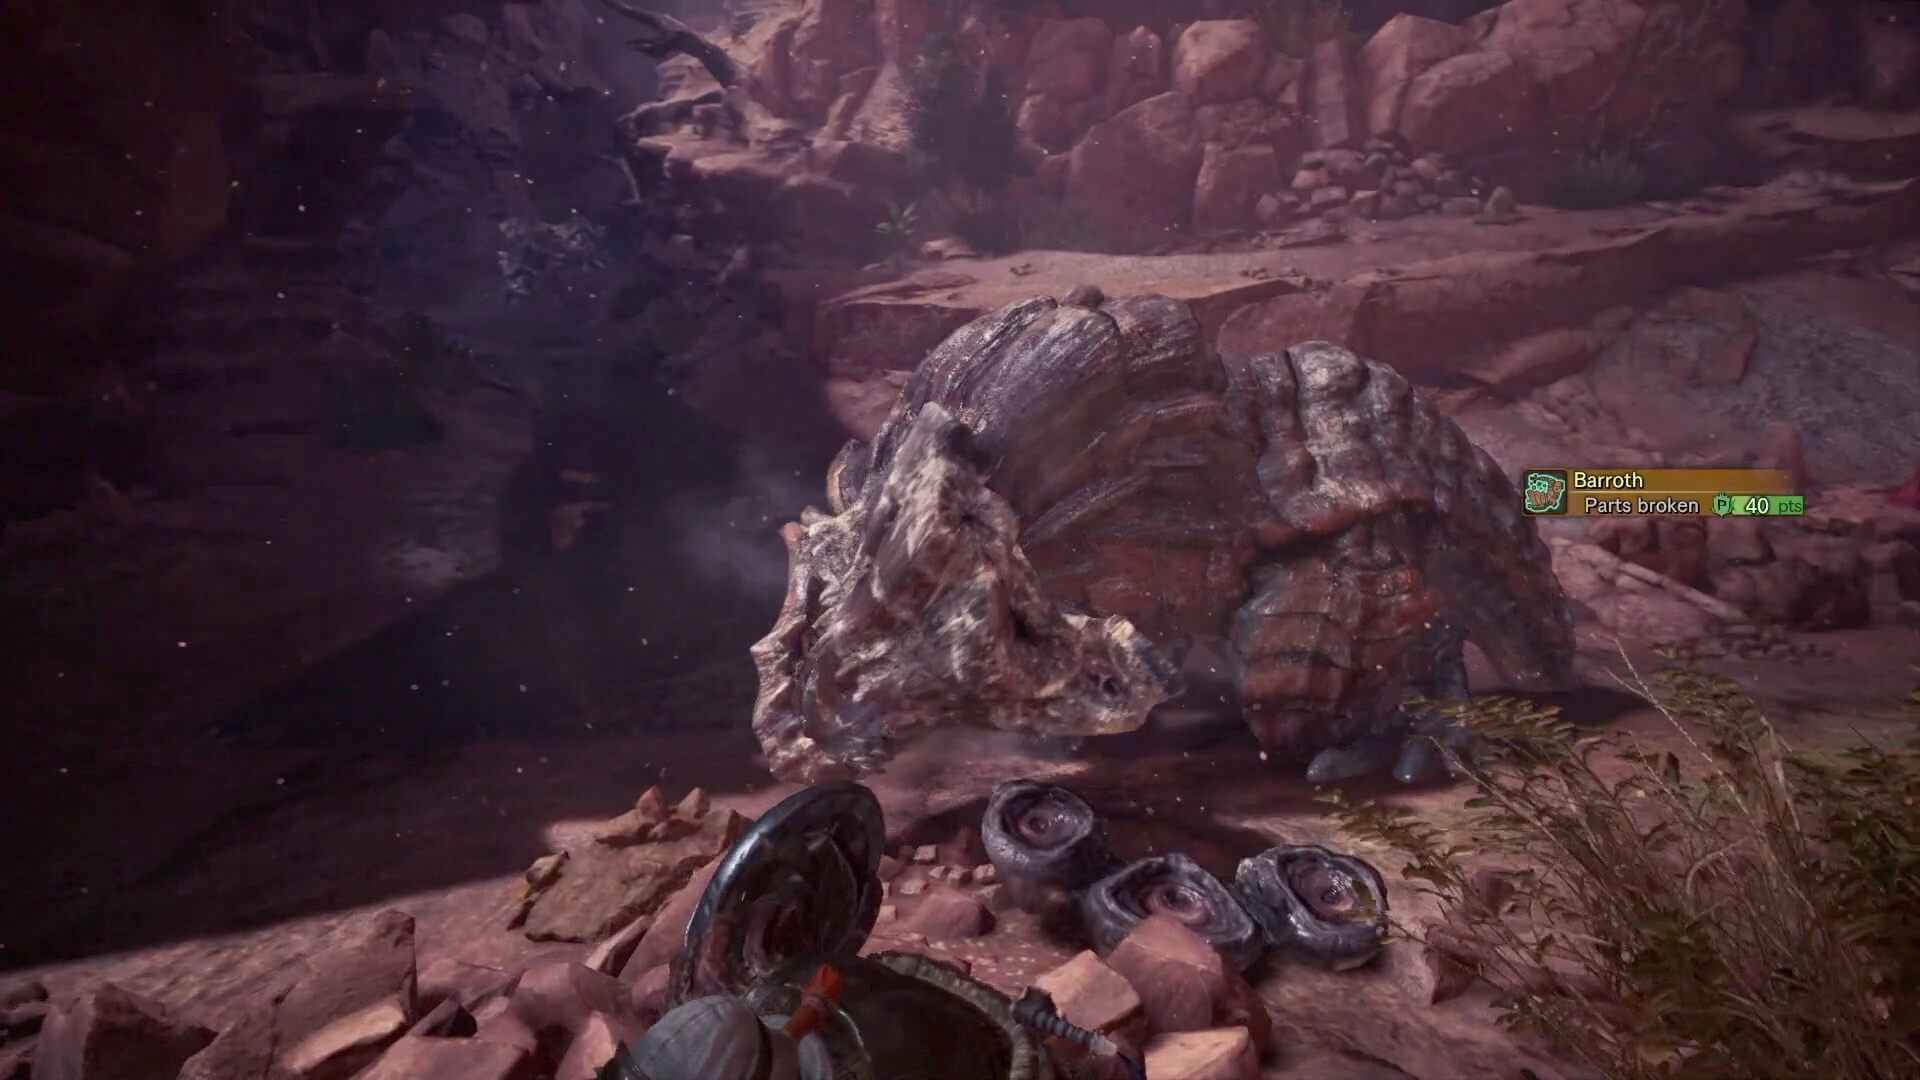 Breaking off Barroth's Crown